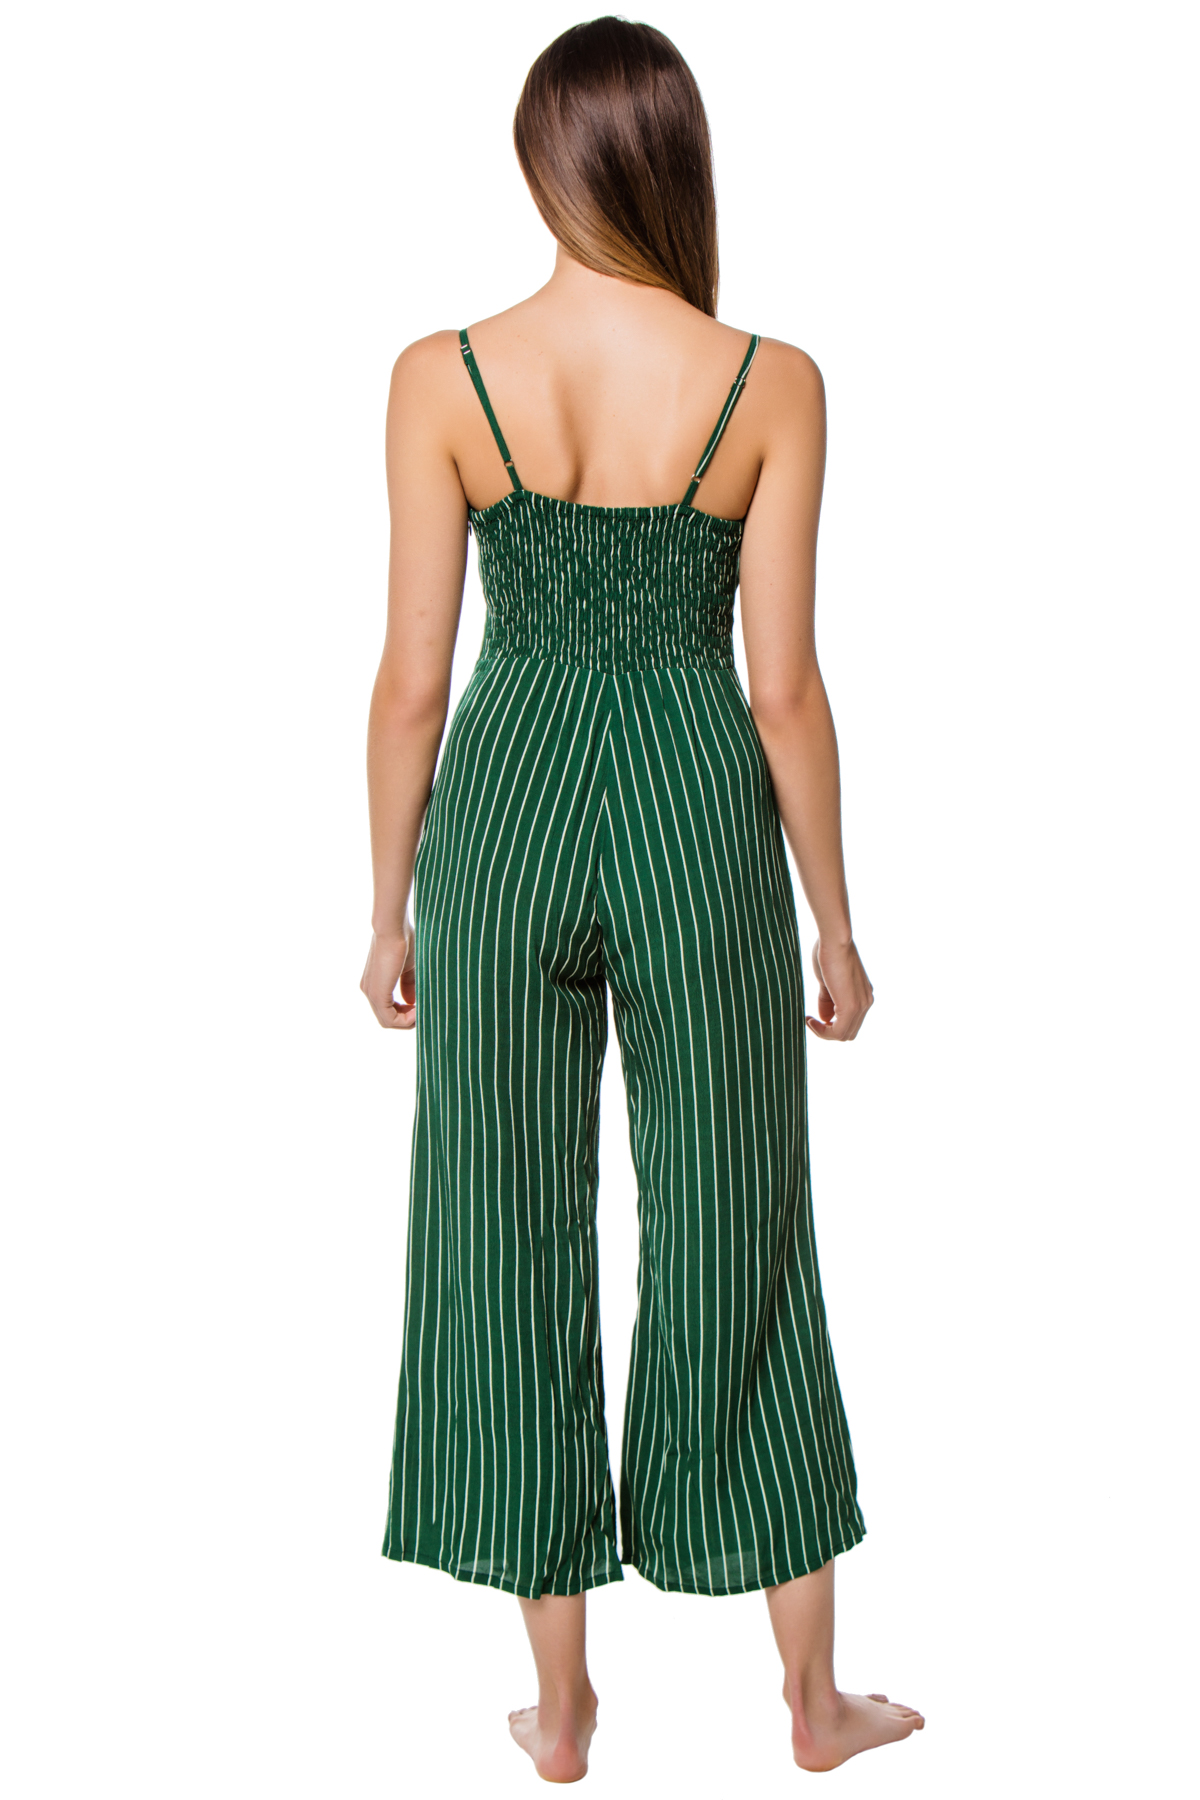 Tie-Front Top Jumpsuit - Paseo Stripe 2